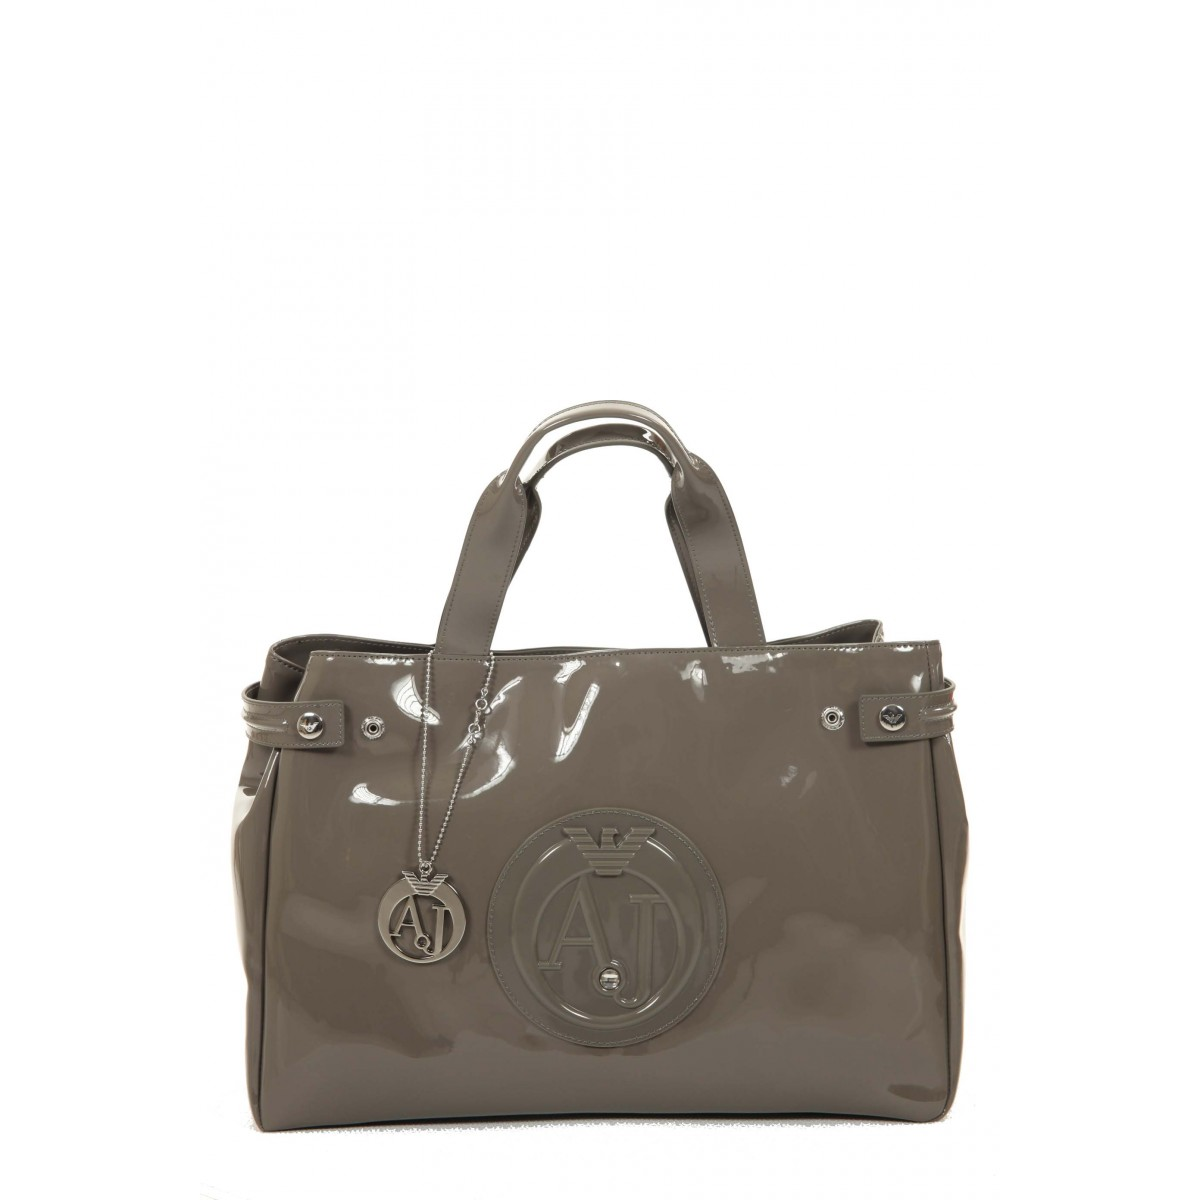 Armani Sac Shopping 05291 Gris ff8fed73996